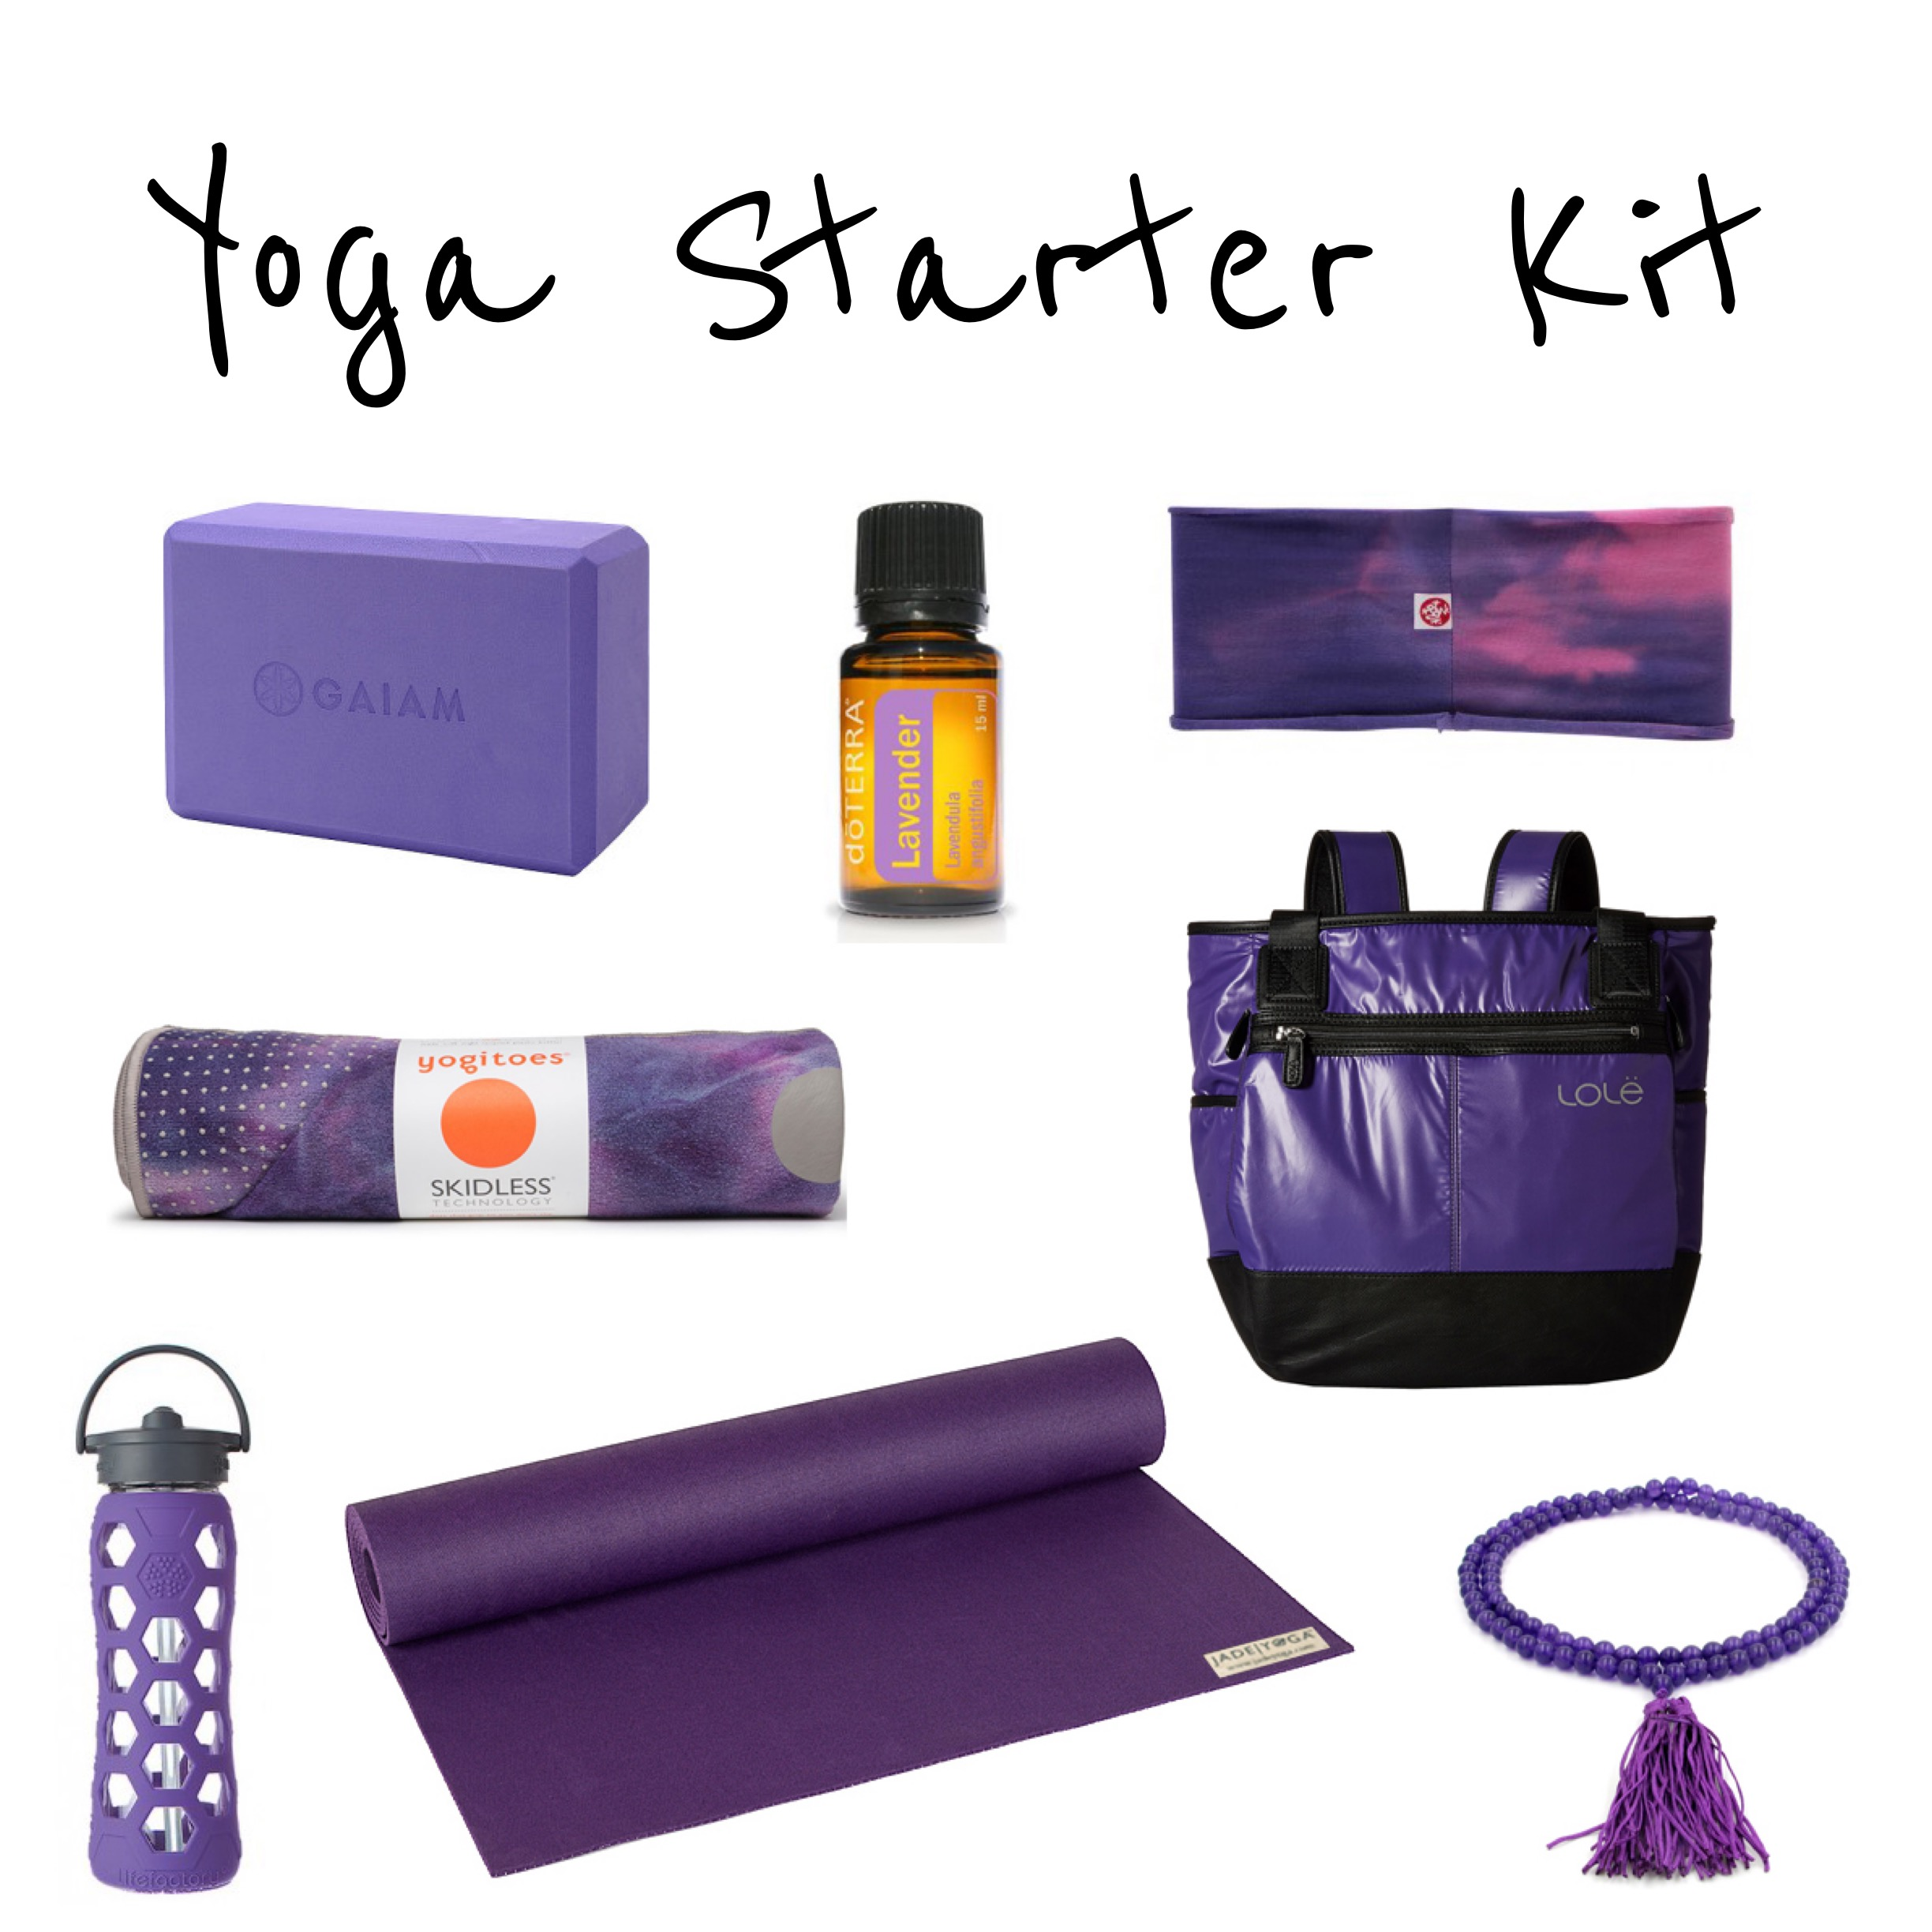 Yoga_Fashion_Apparel_Blog